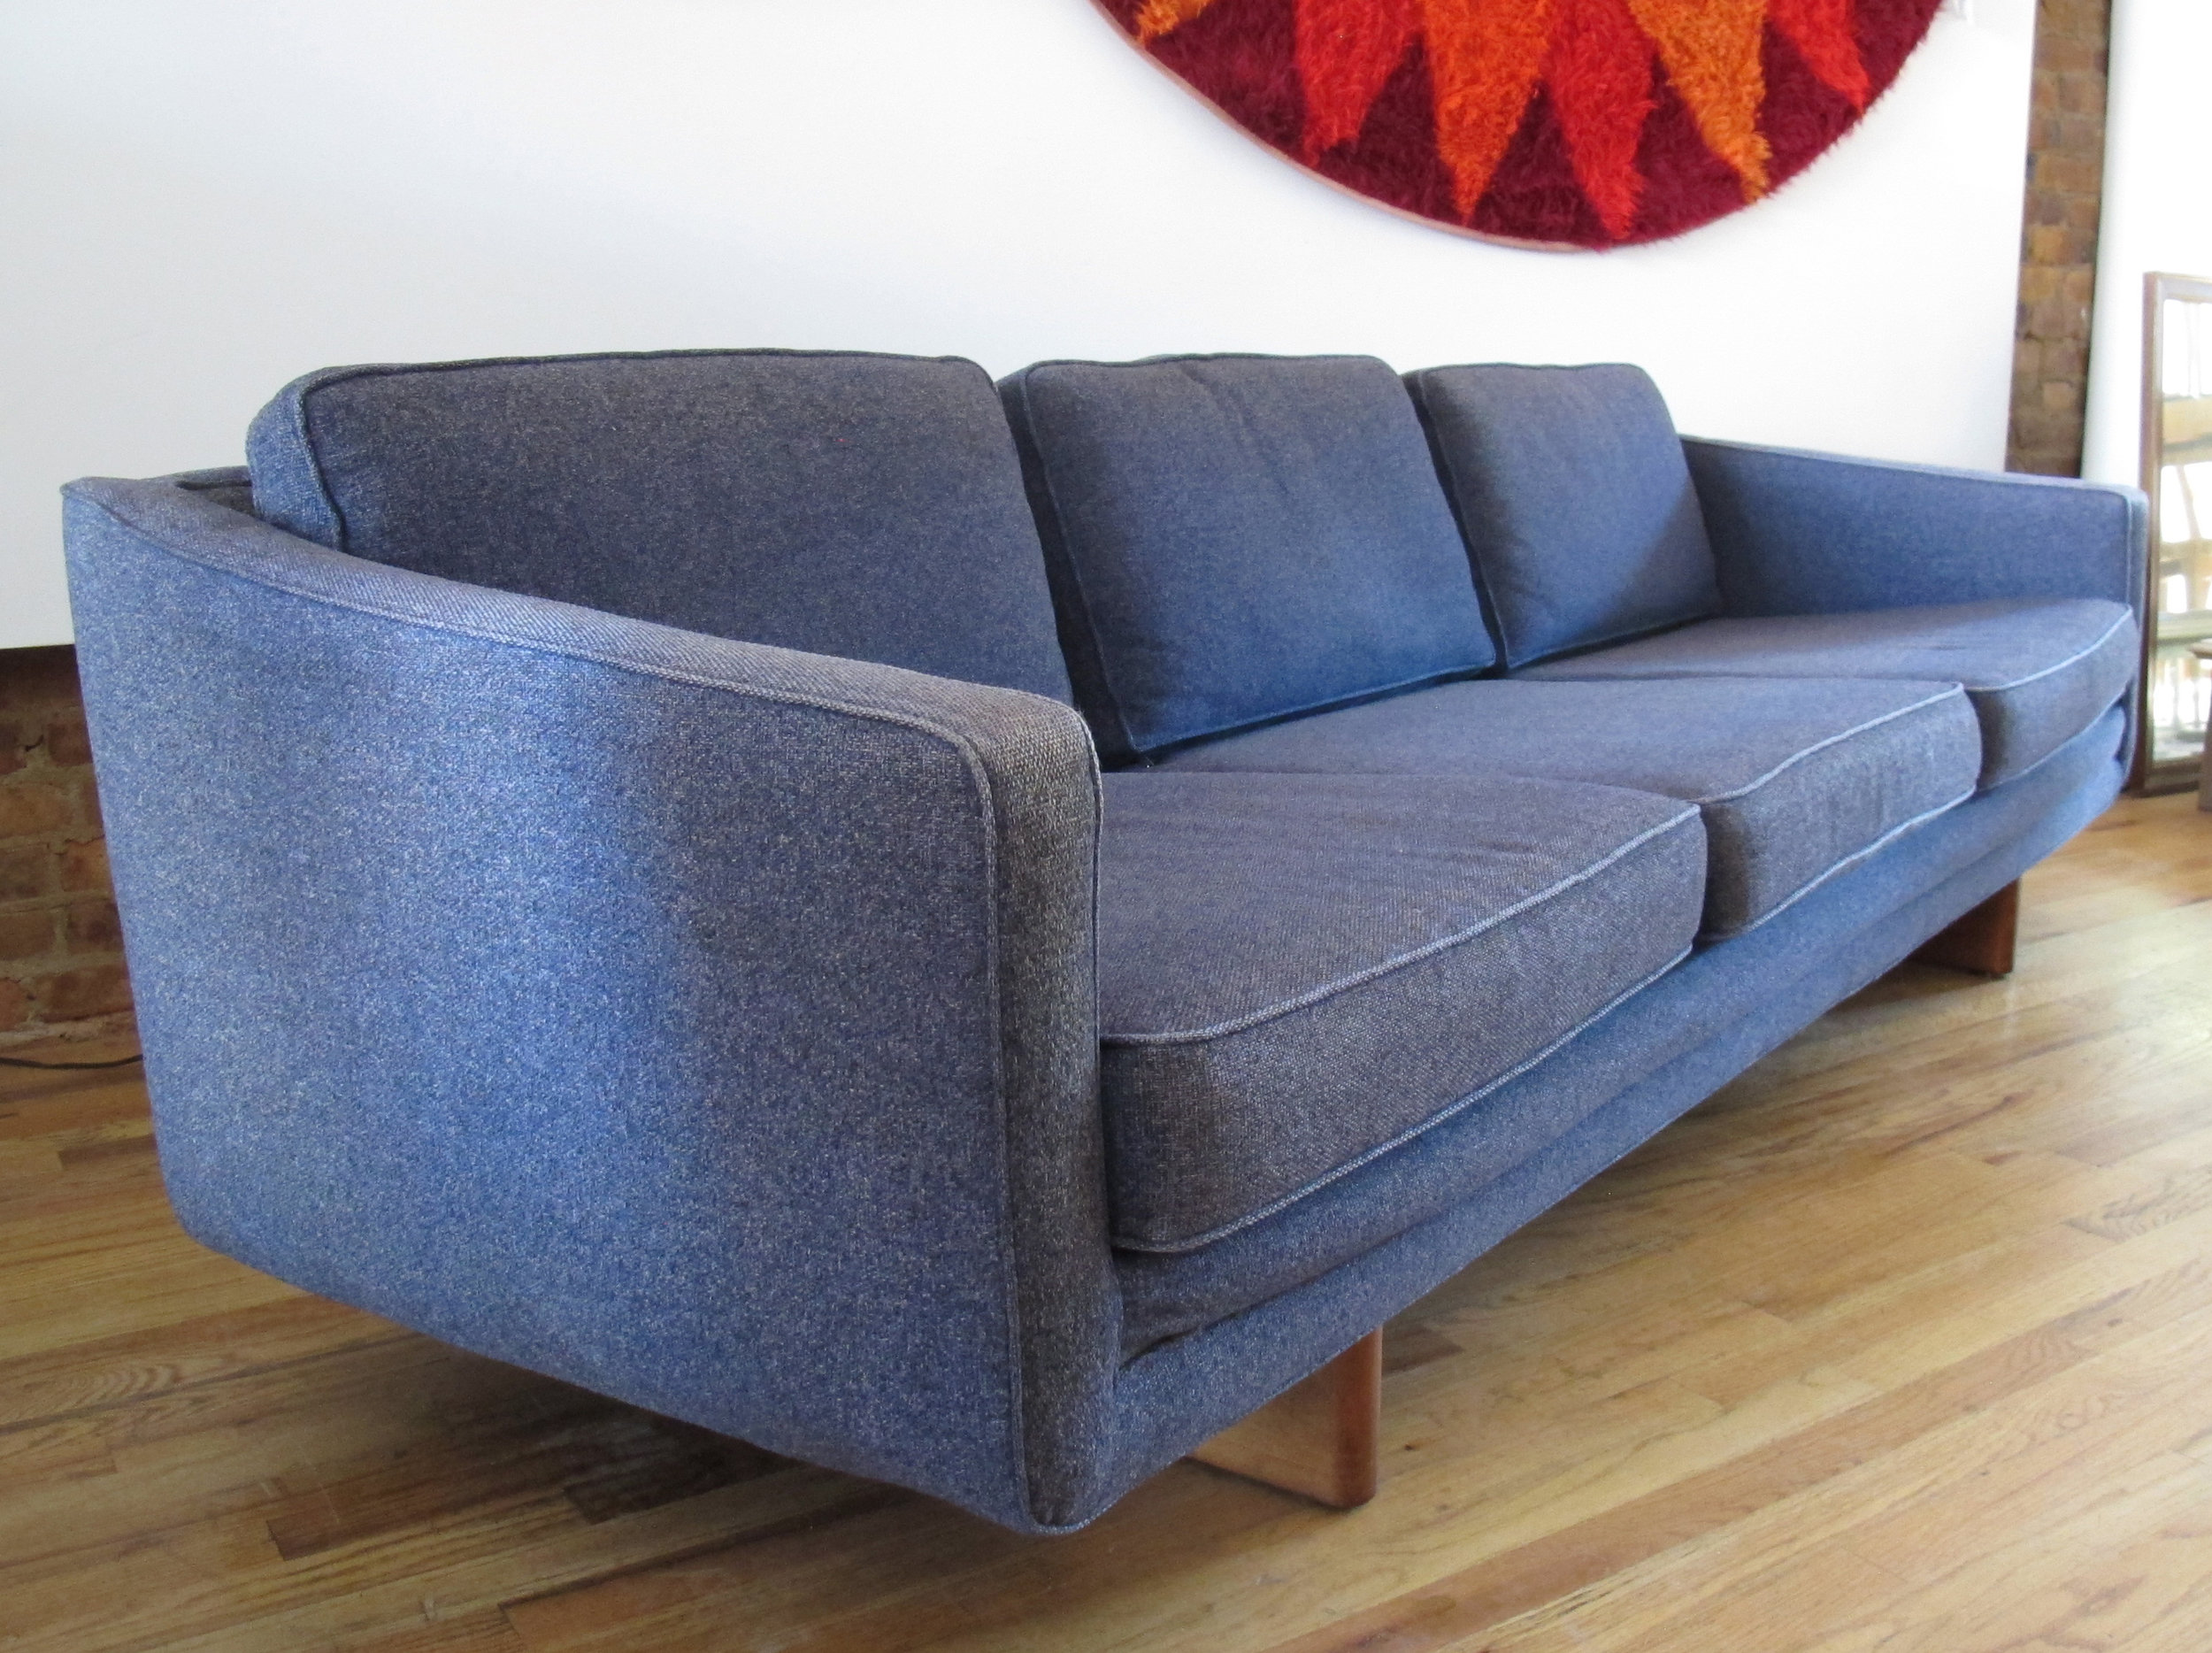 MID CENTURY ADRIAN PEARSALL STYLE SOFA BY ARMSTRONG